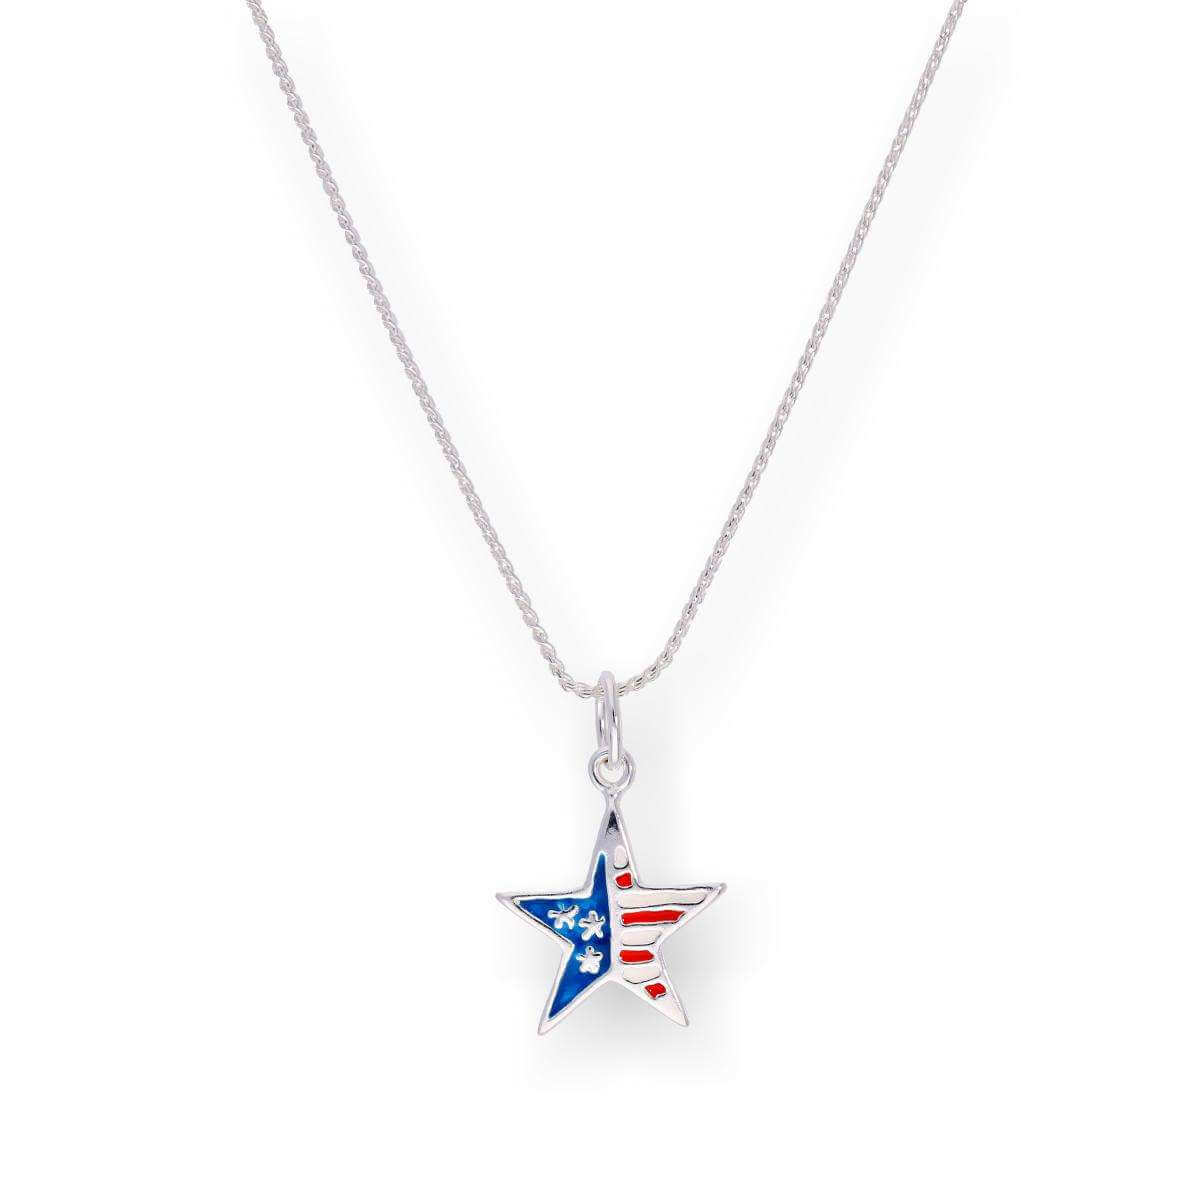 Sterling Silver & Enamel American Flag Star Pendant Necklace 16 - 22 Inches